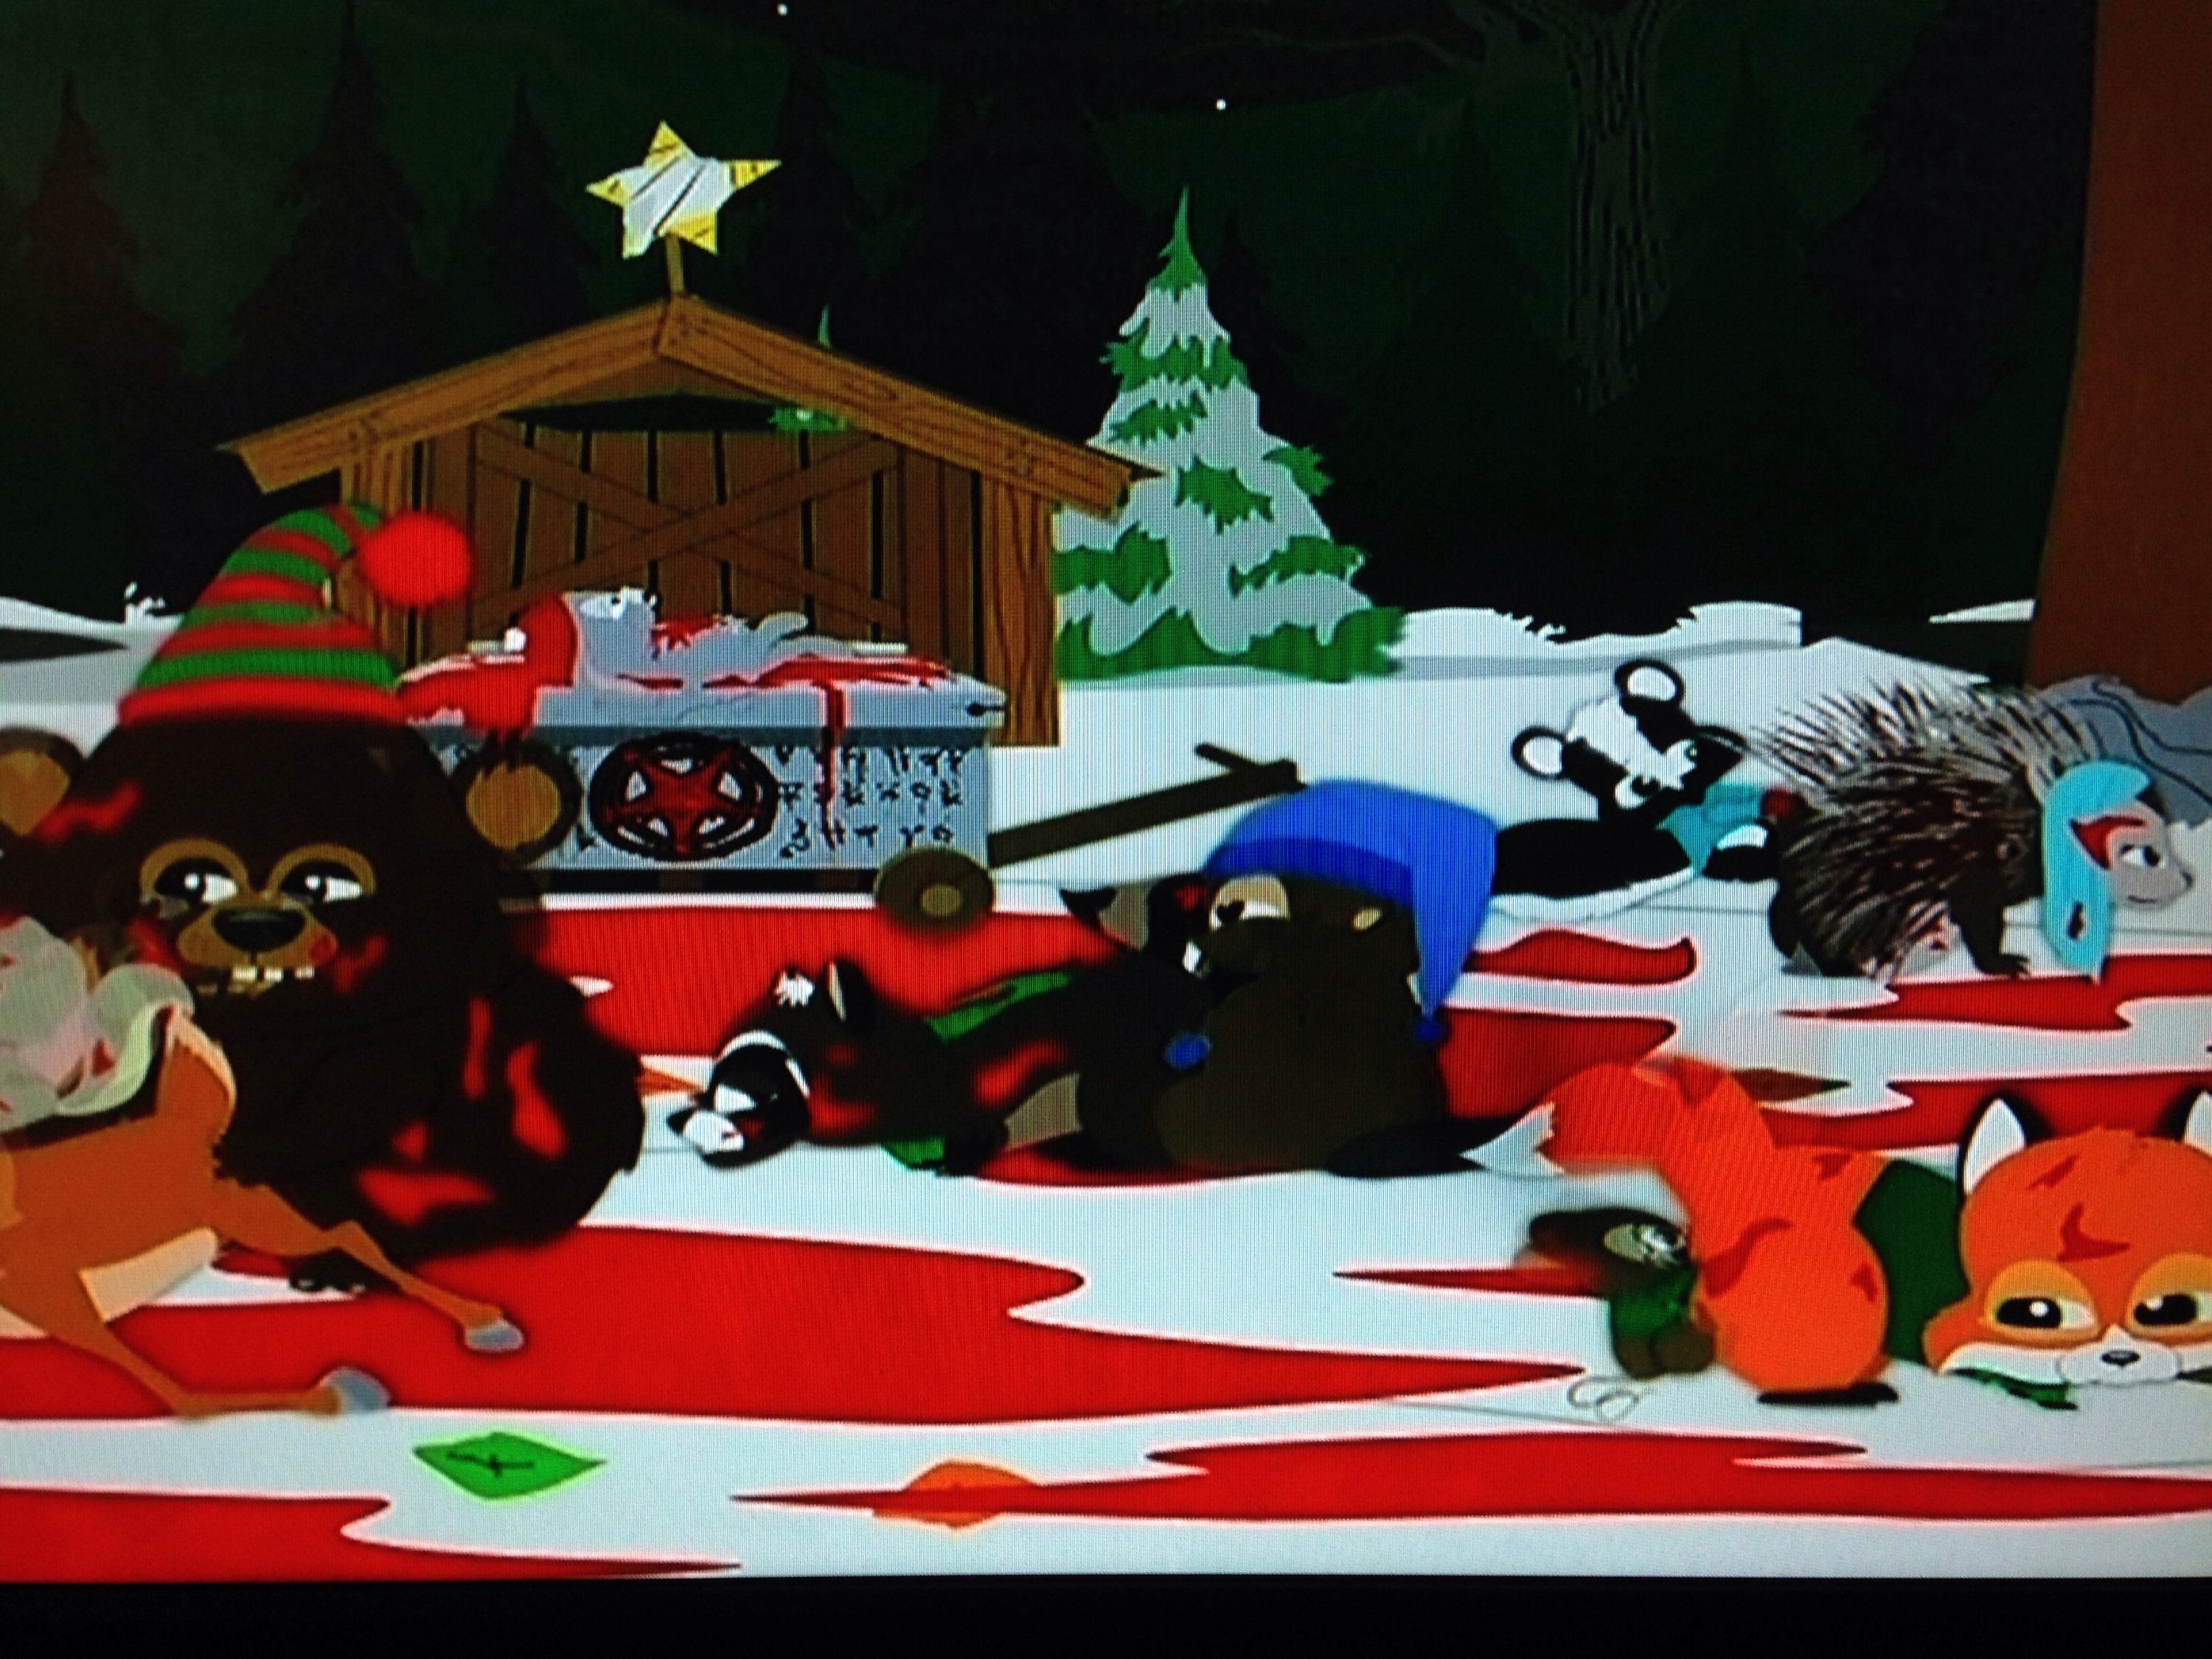 South Park Woodland Critter Christmas.South Park Woodland Critter Christmas Gay Geek Gab